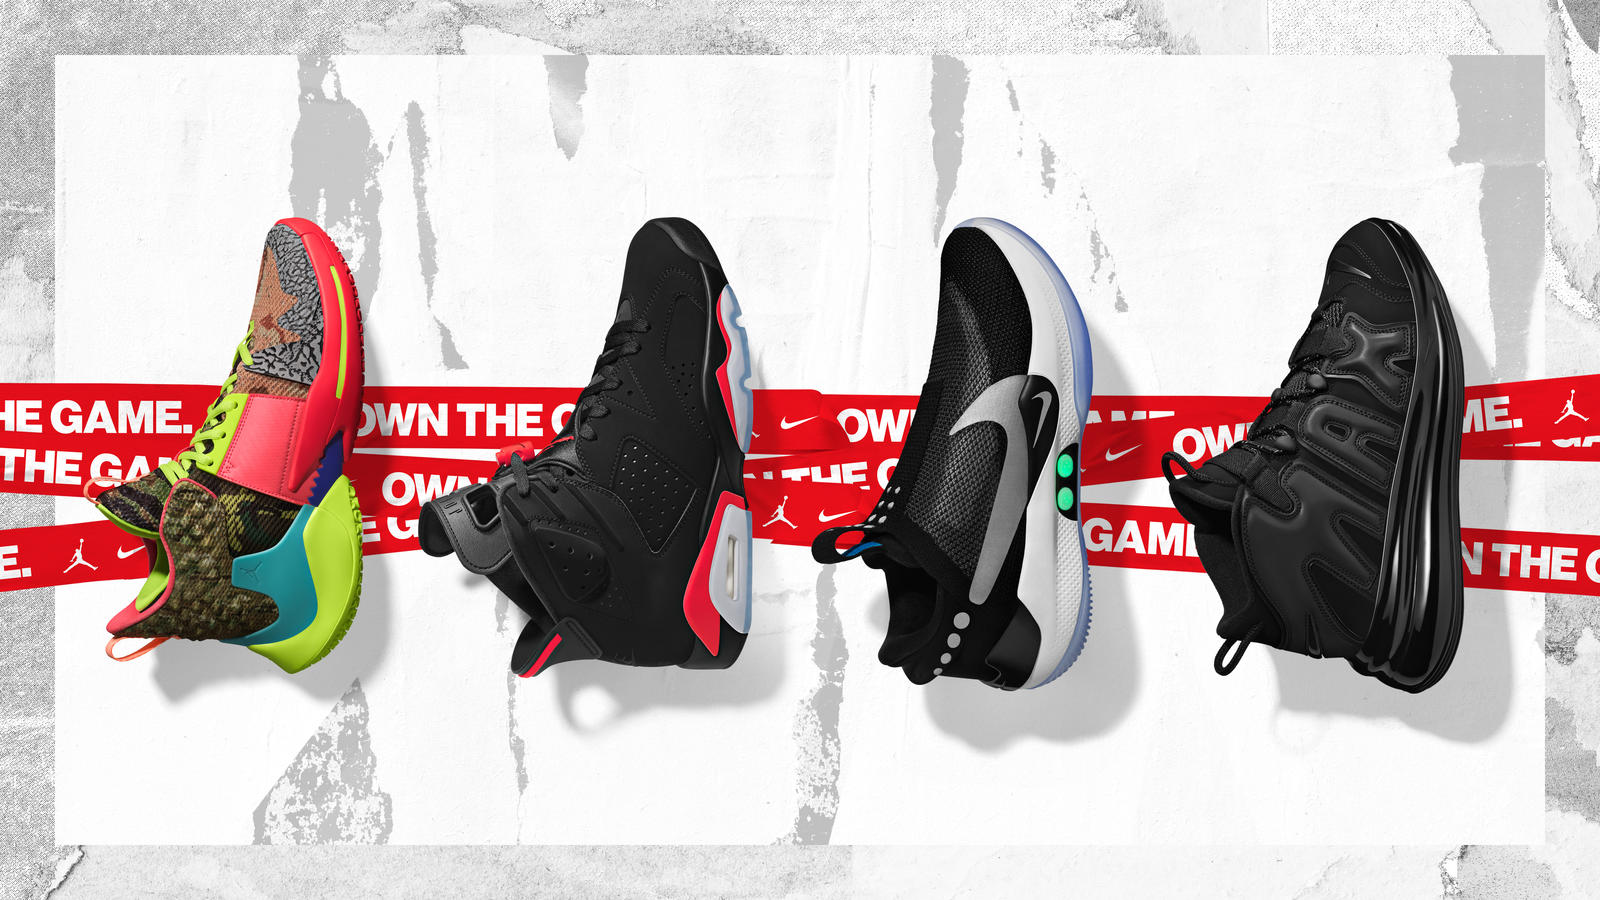 Nike and Jordan Brand s 2019 NBA All-Star Collection - Nike News 943a62d9e